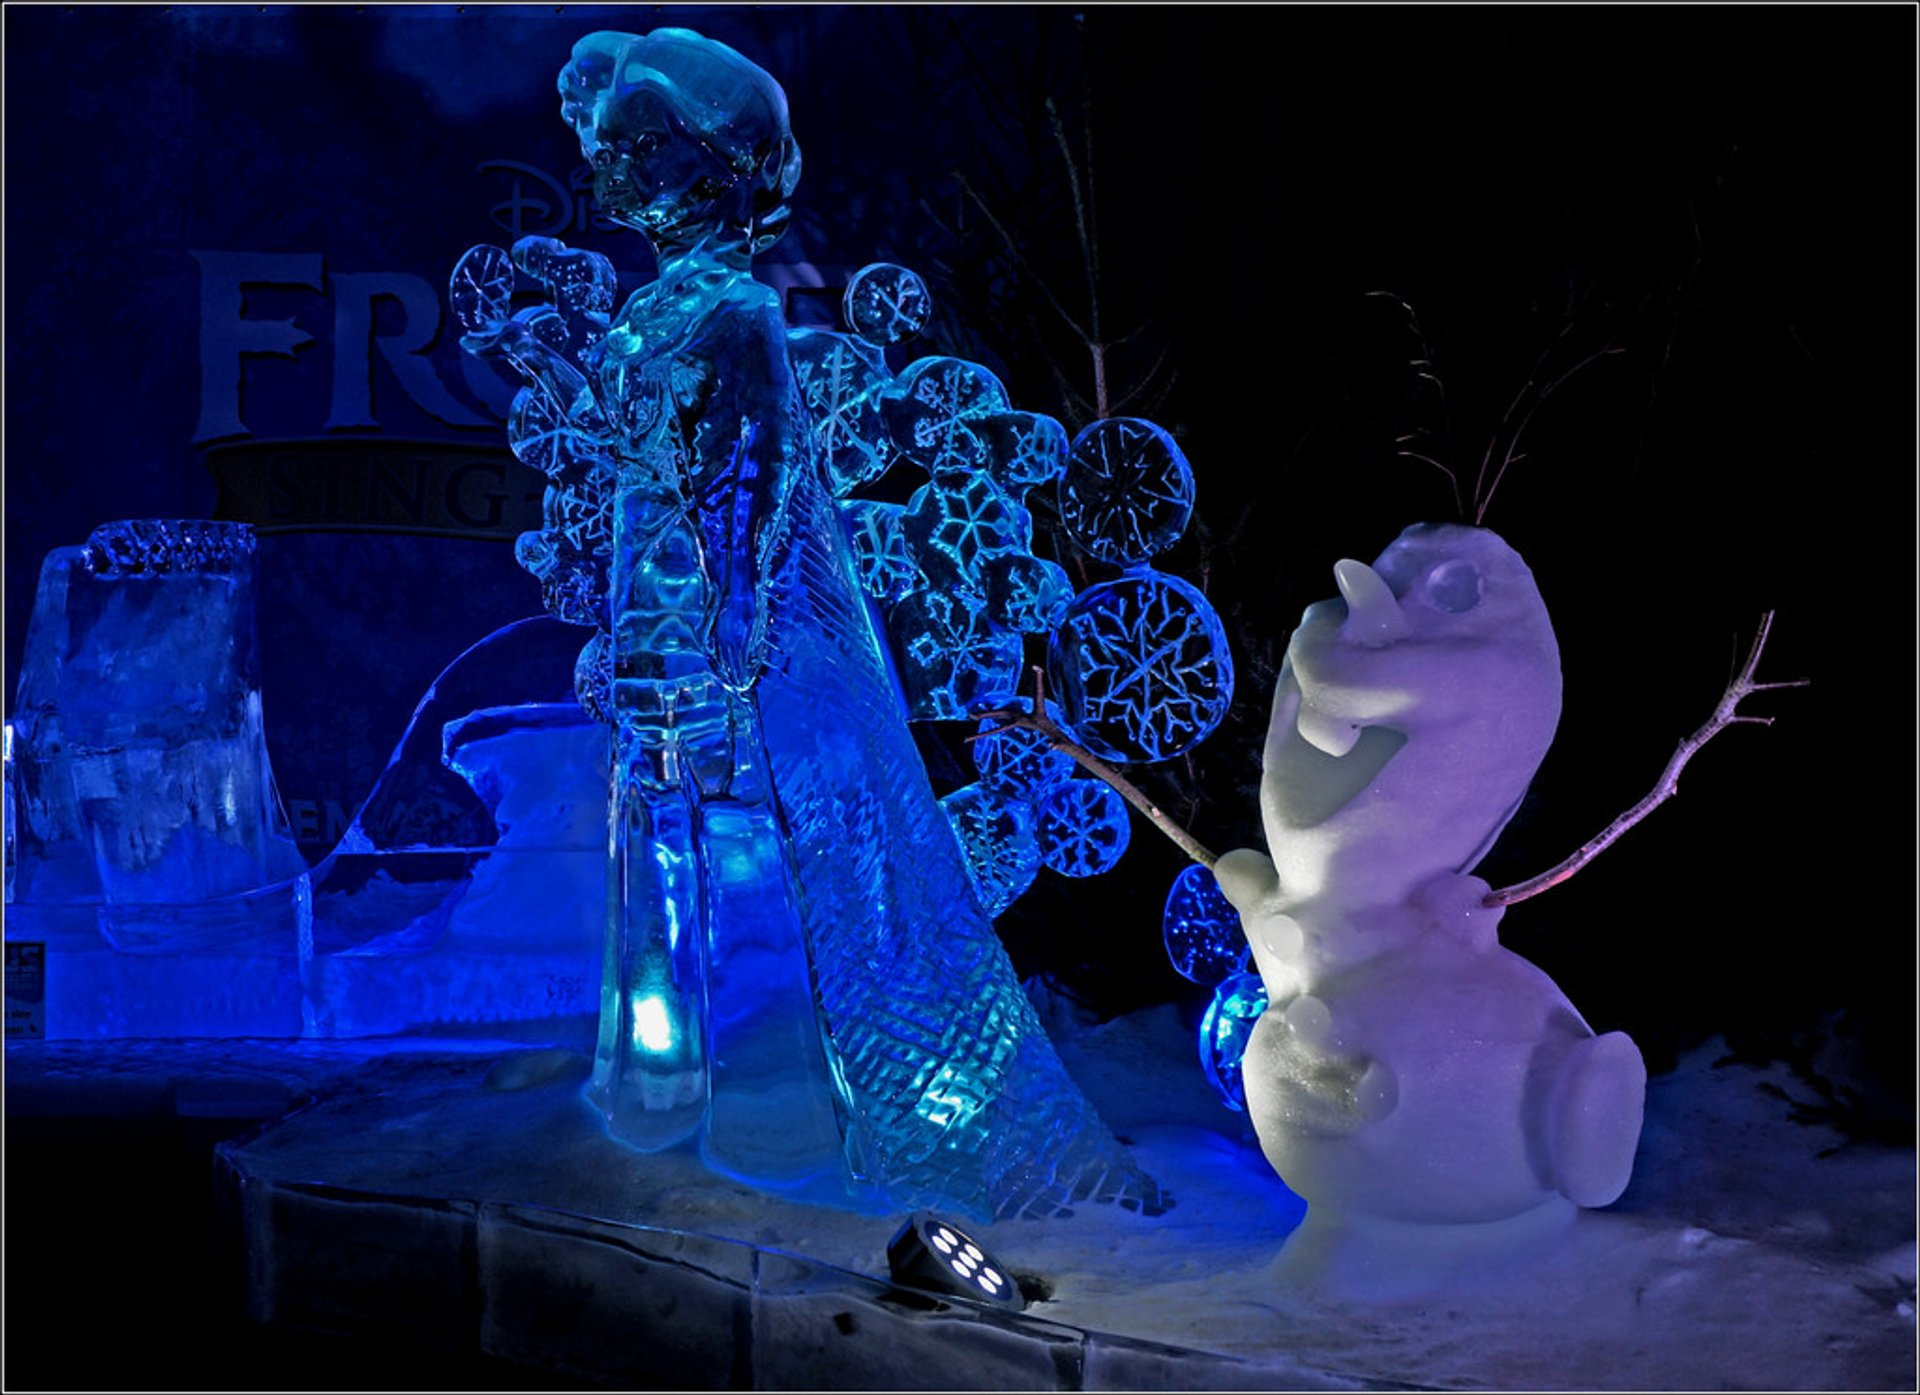 Ice Sculptures in Zwolle in The Netherlands - Best Season 2020